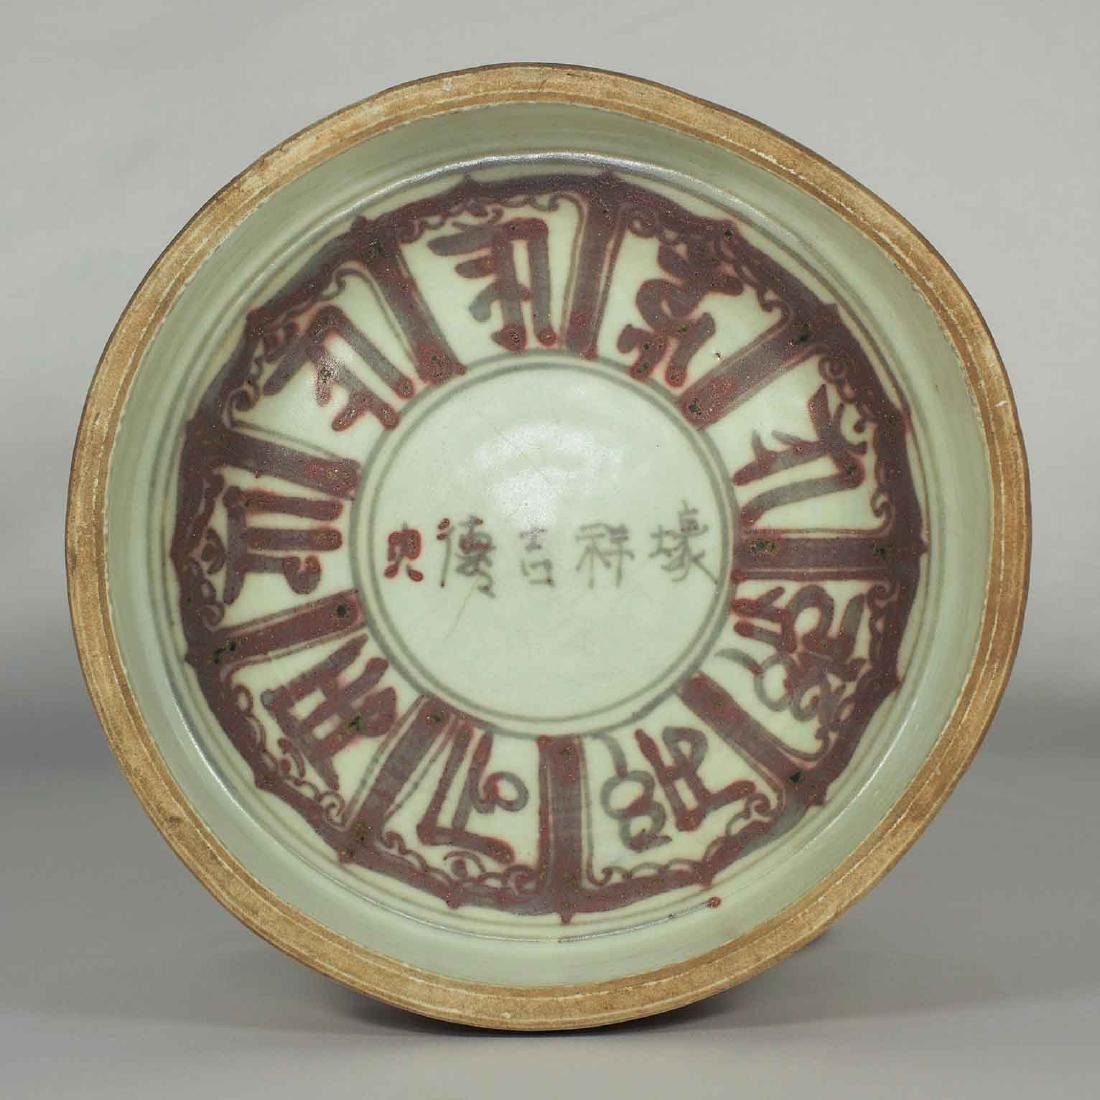 Lidded Jar with Tibetan Script Design, Yongle, Ming - 6